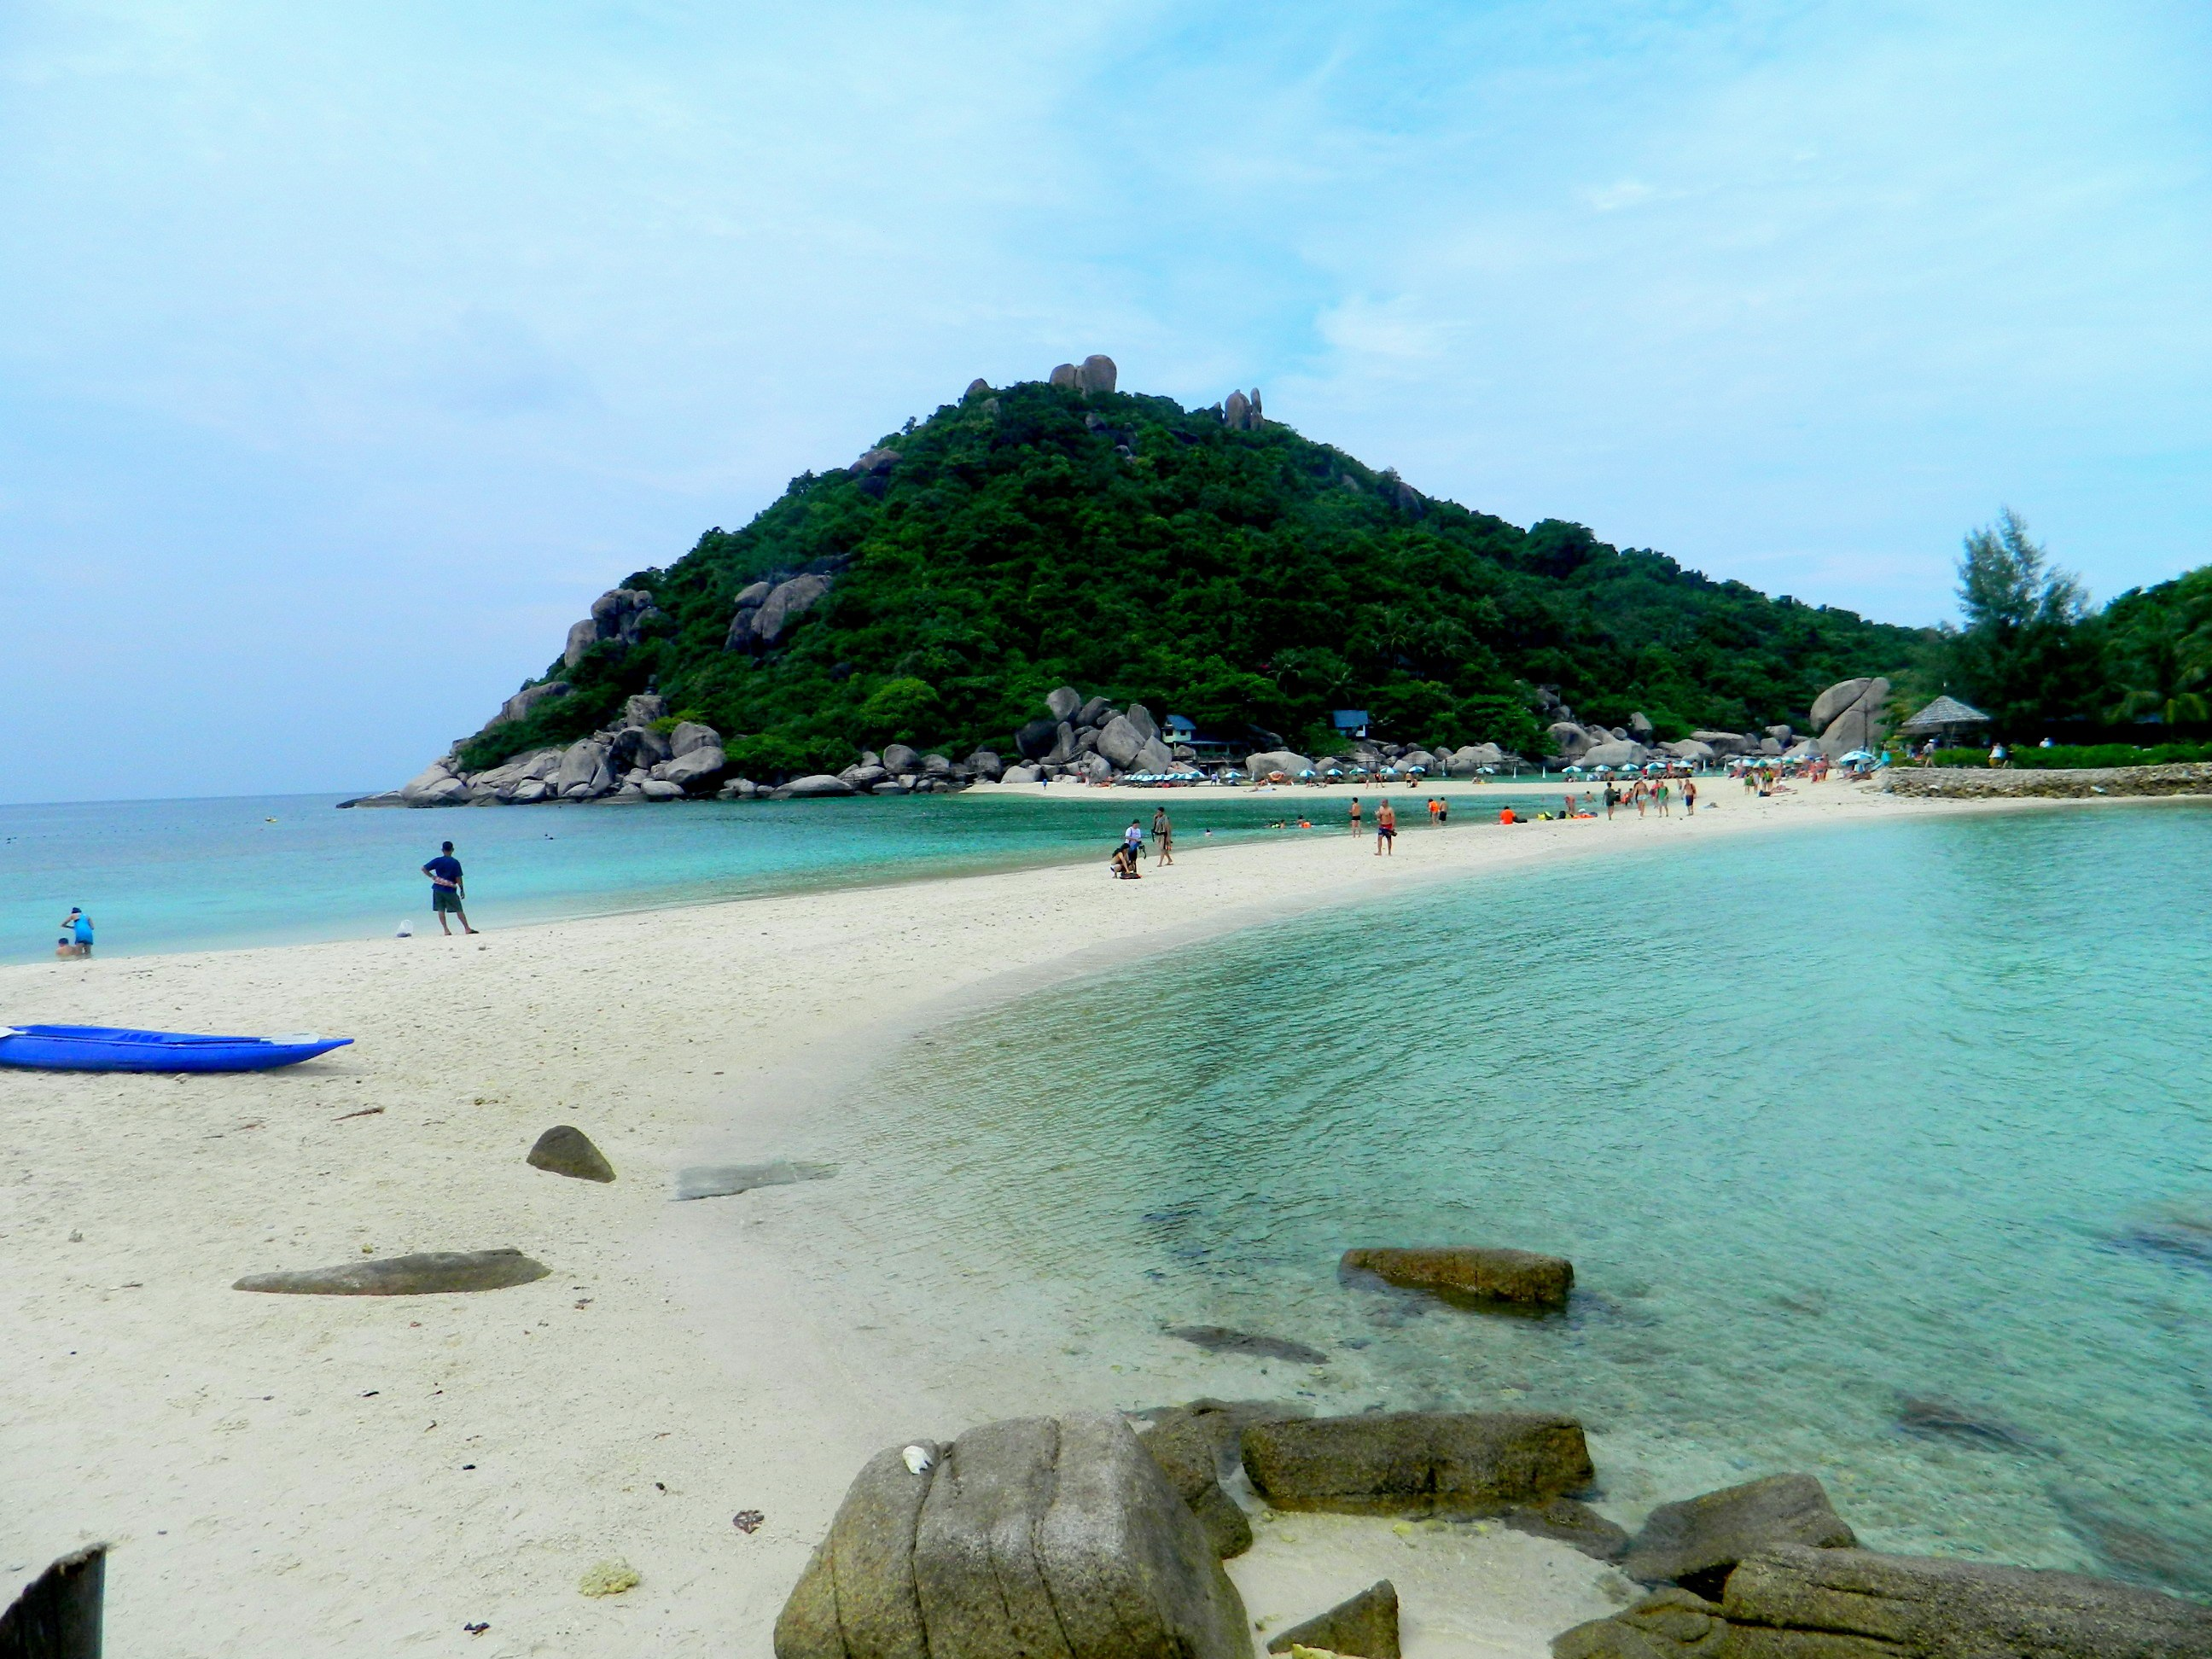 Koh Nang Yuan The Gulf Coast Beaches, Snorkeling Around Koh Tao and Koh Nangyuan | Travel Moments